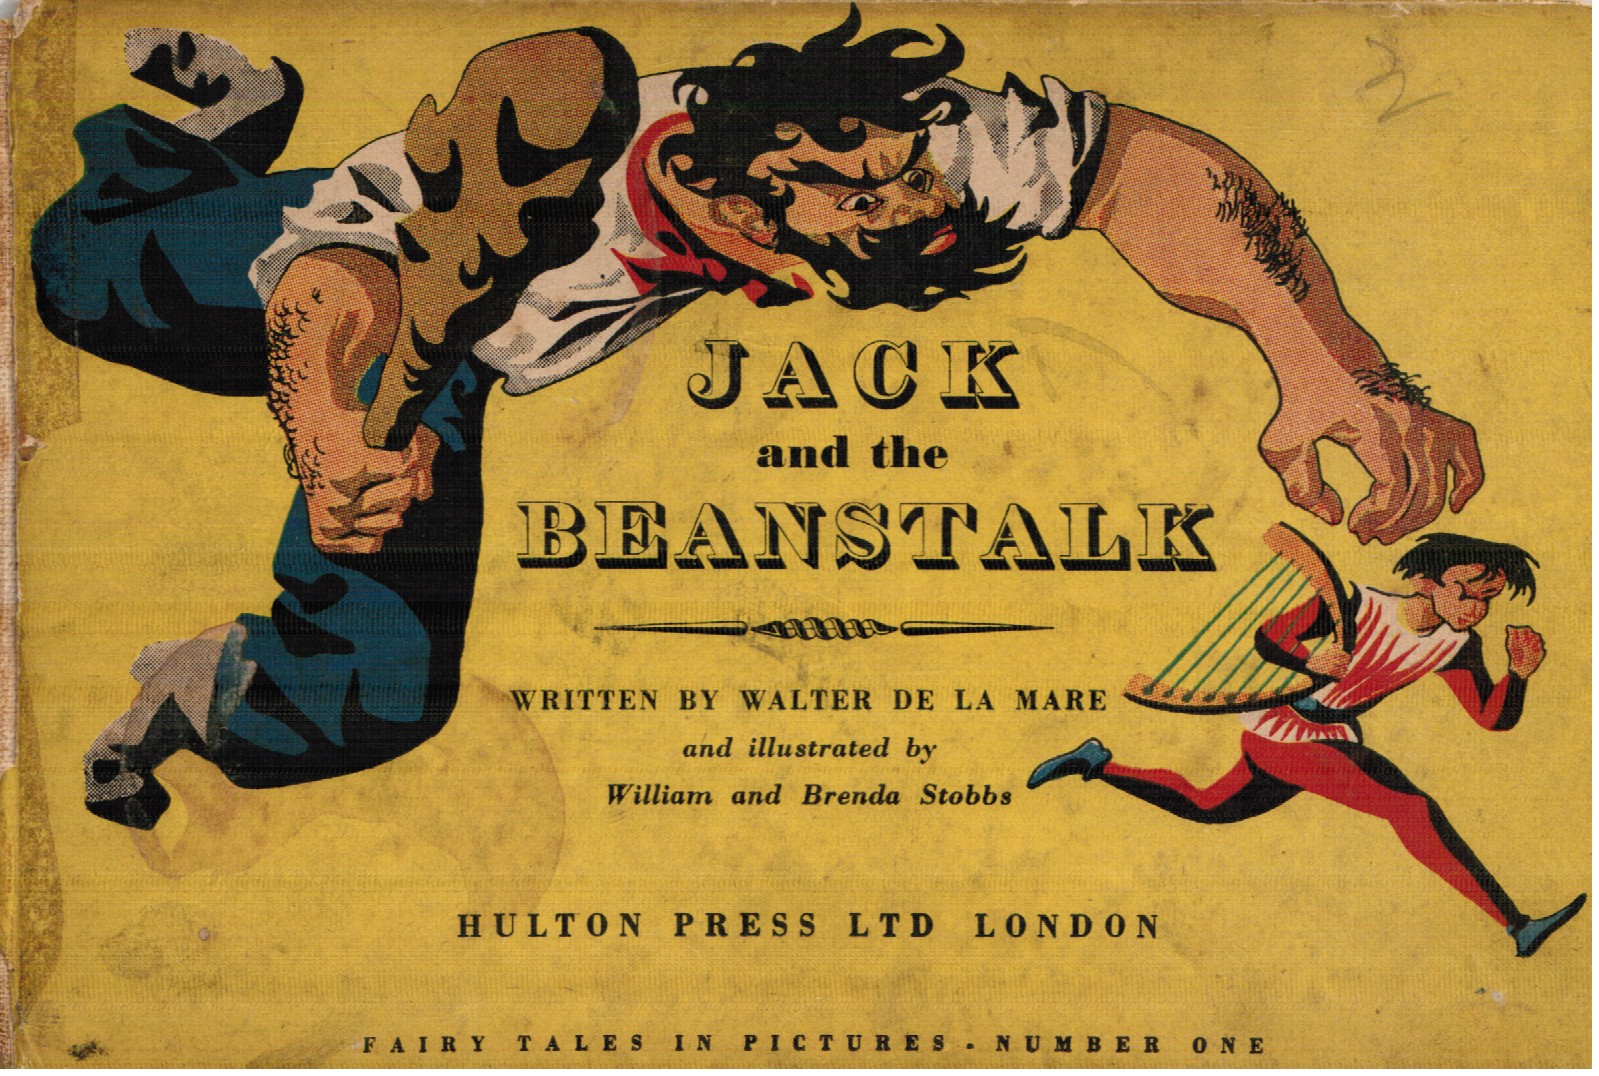 Pictures From An Old Book Jack And The Beanstalk